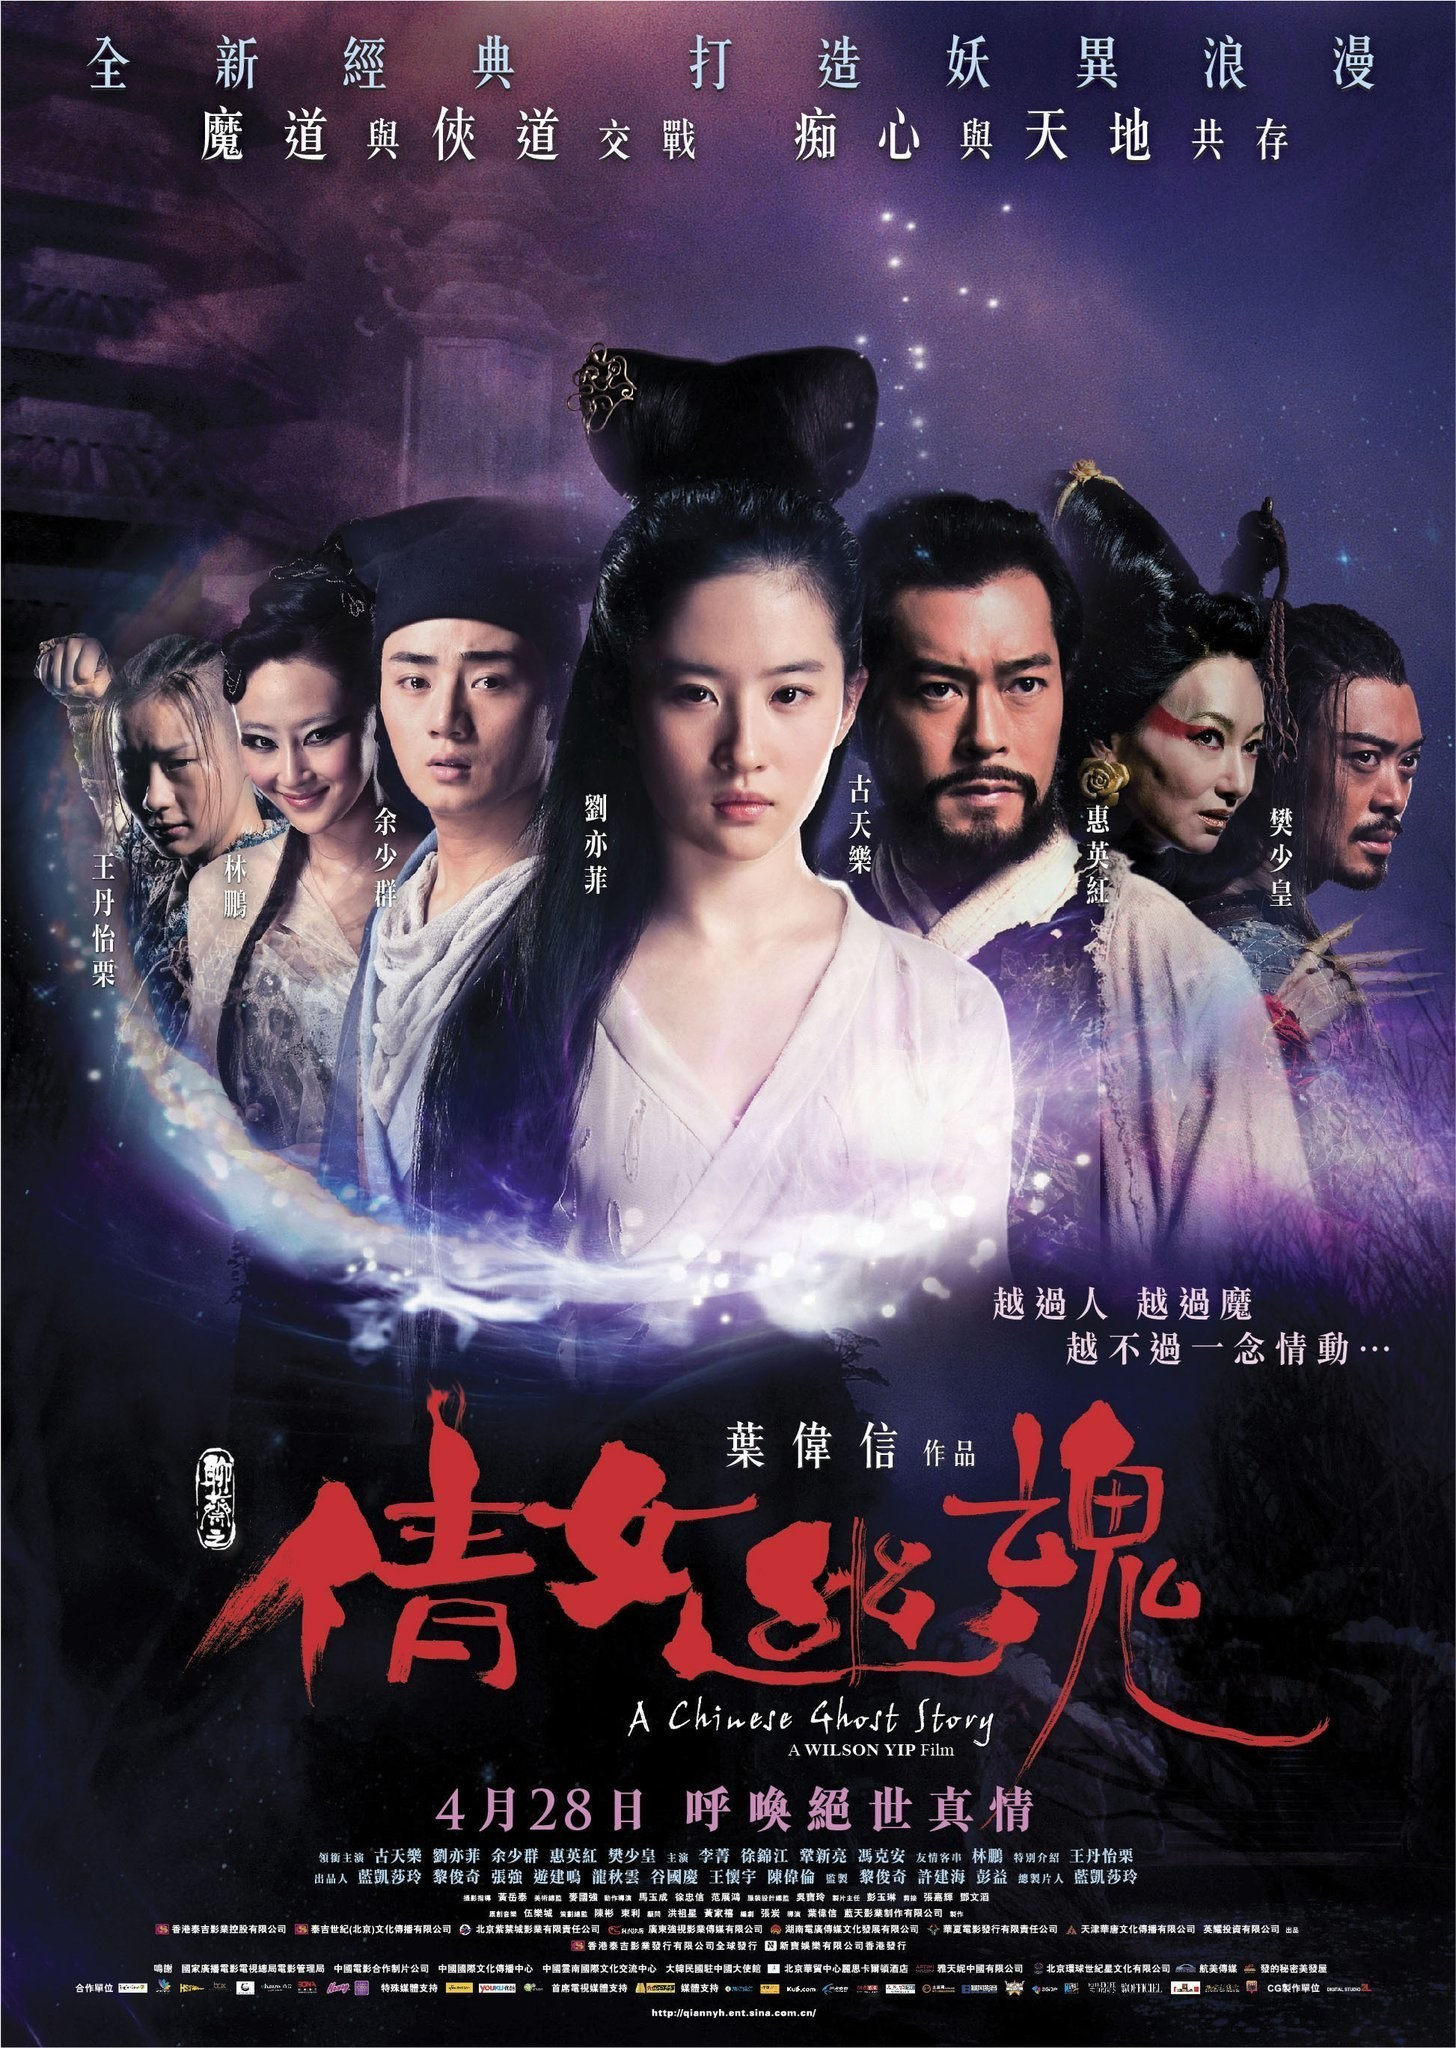 Subscene - Subtitles for A Chinese Ghost Story (A Chinese